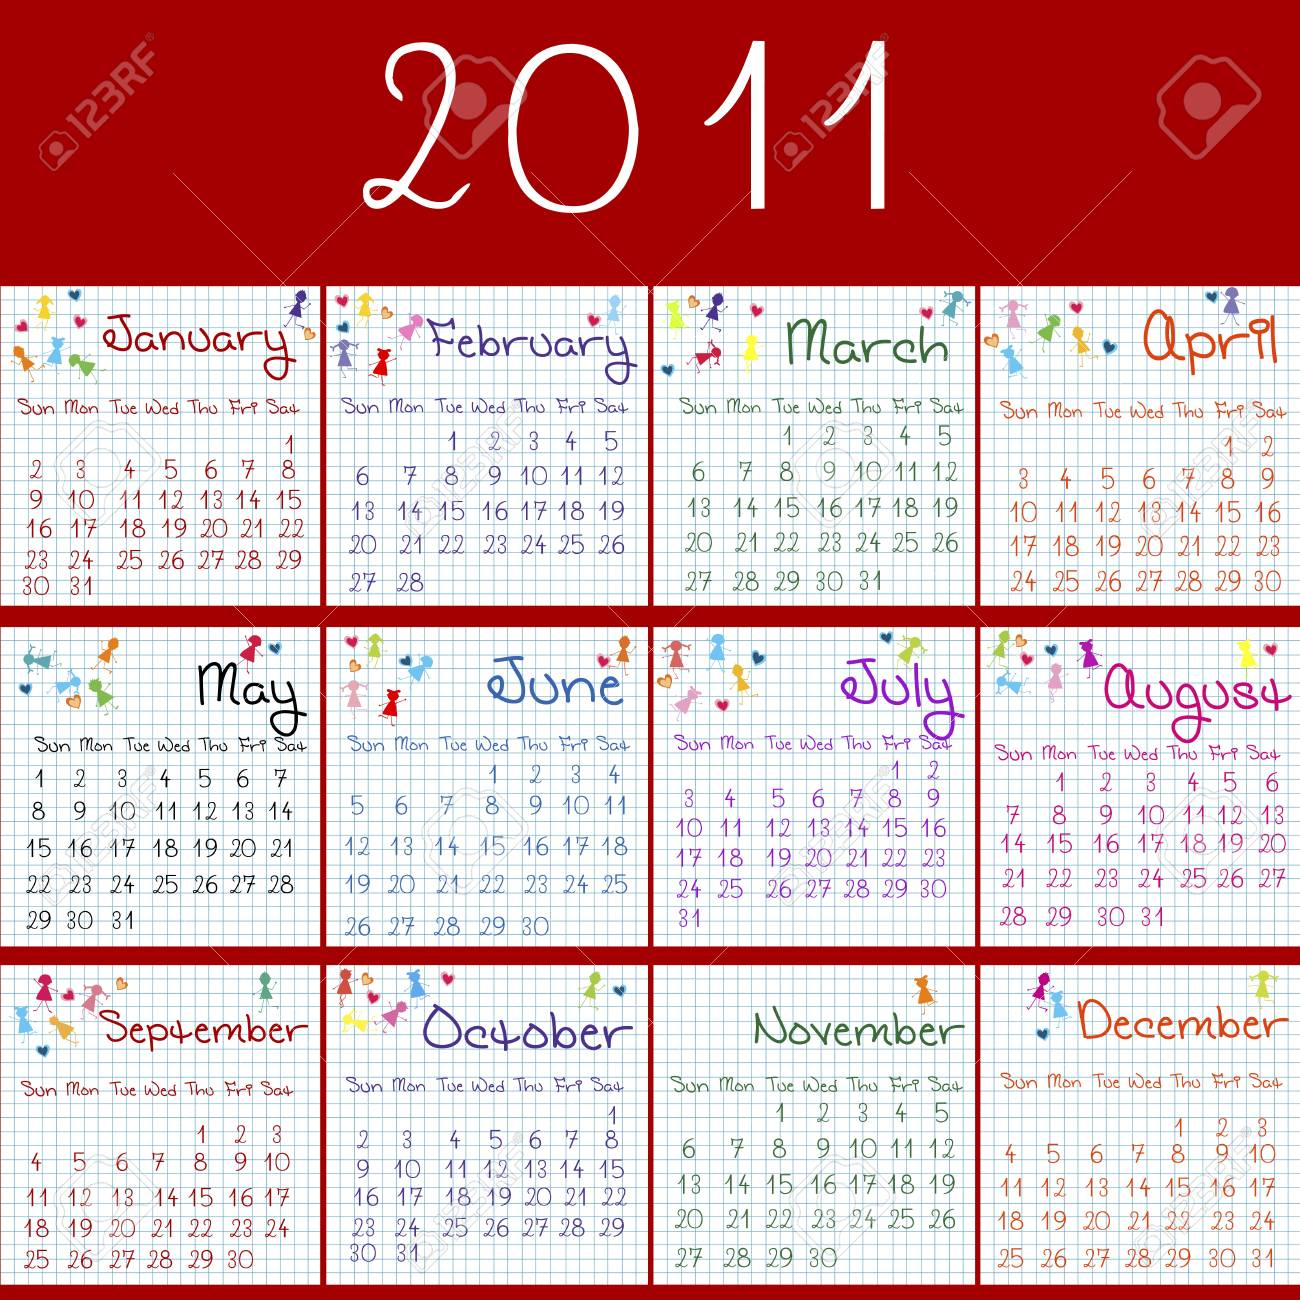 2011 calendar on math pages and red background Stock Photo - 7613379